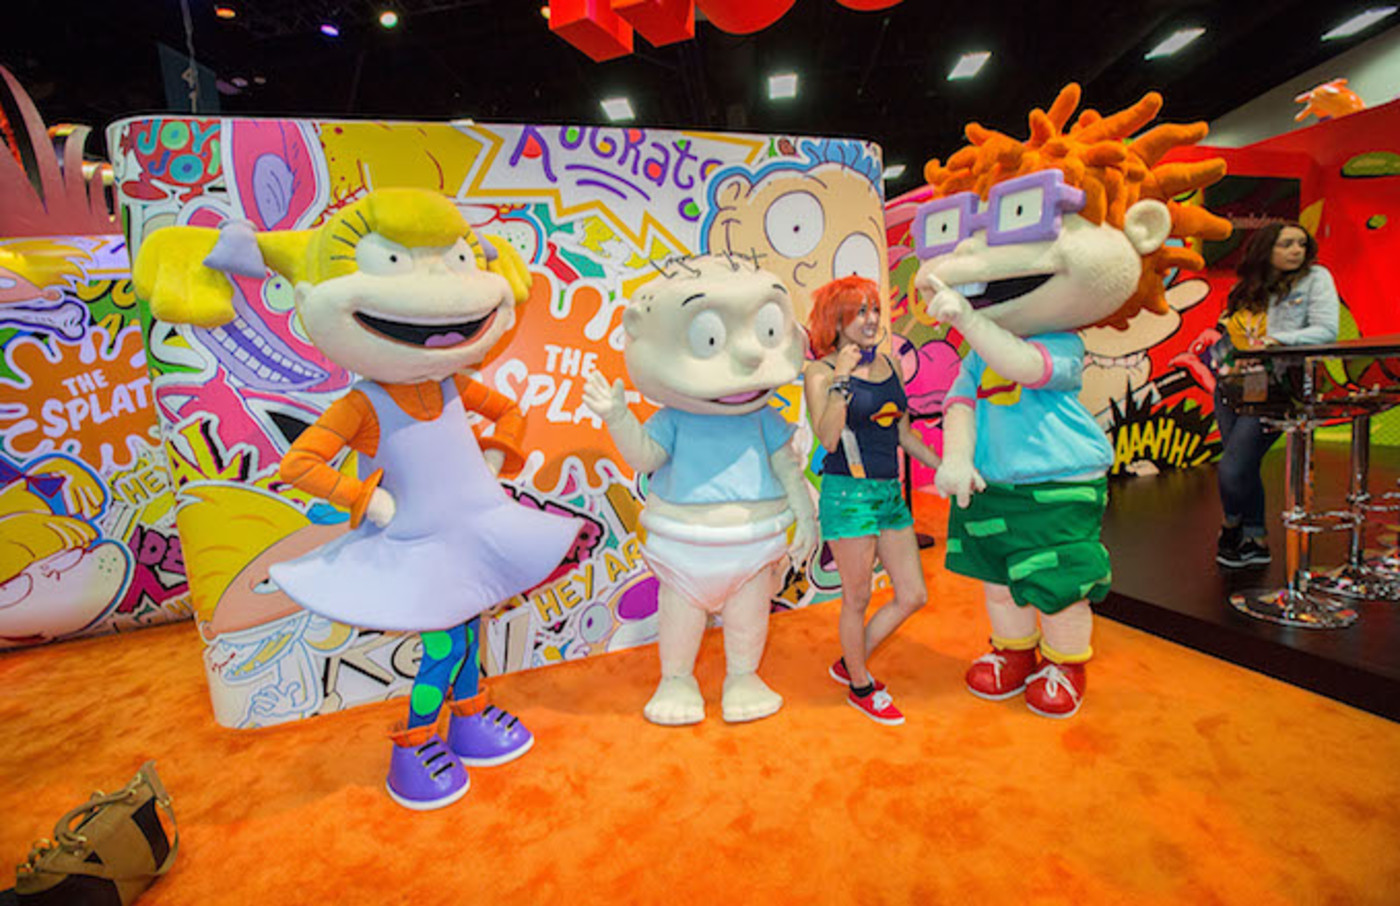 Fans pose for photos with characters from Nickelodeon's 'Rugrats' cartoon.